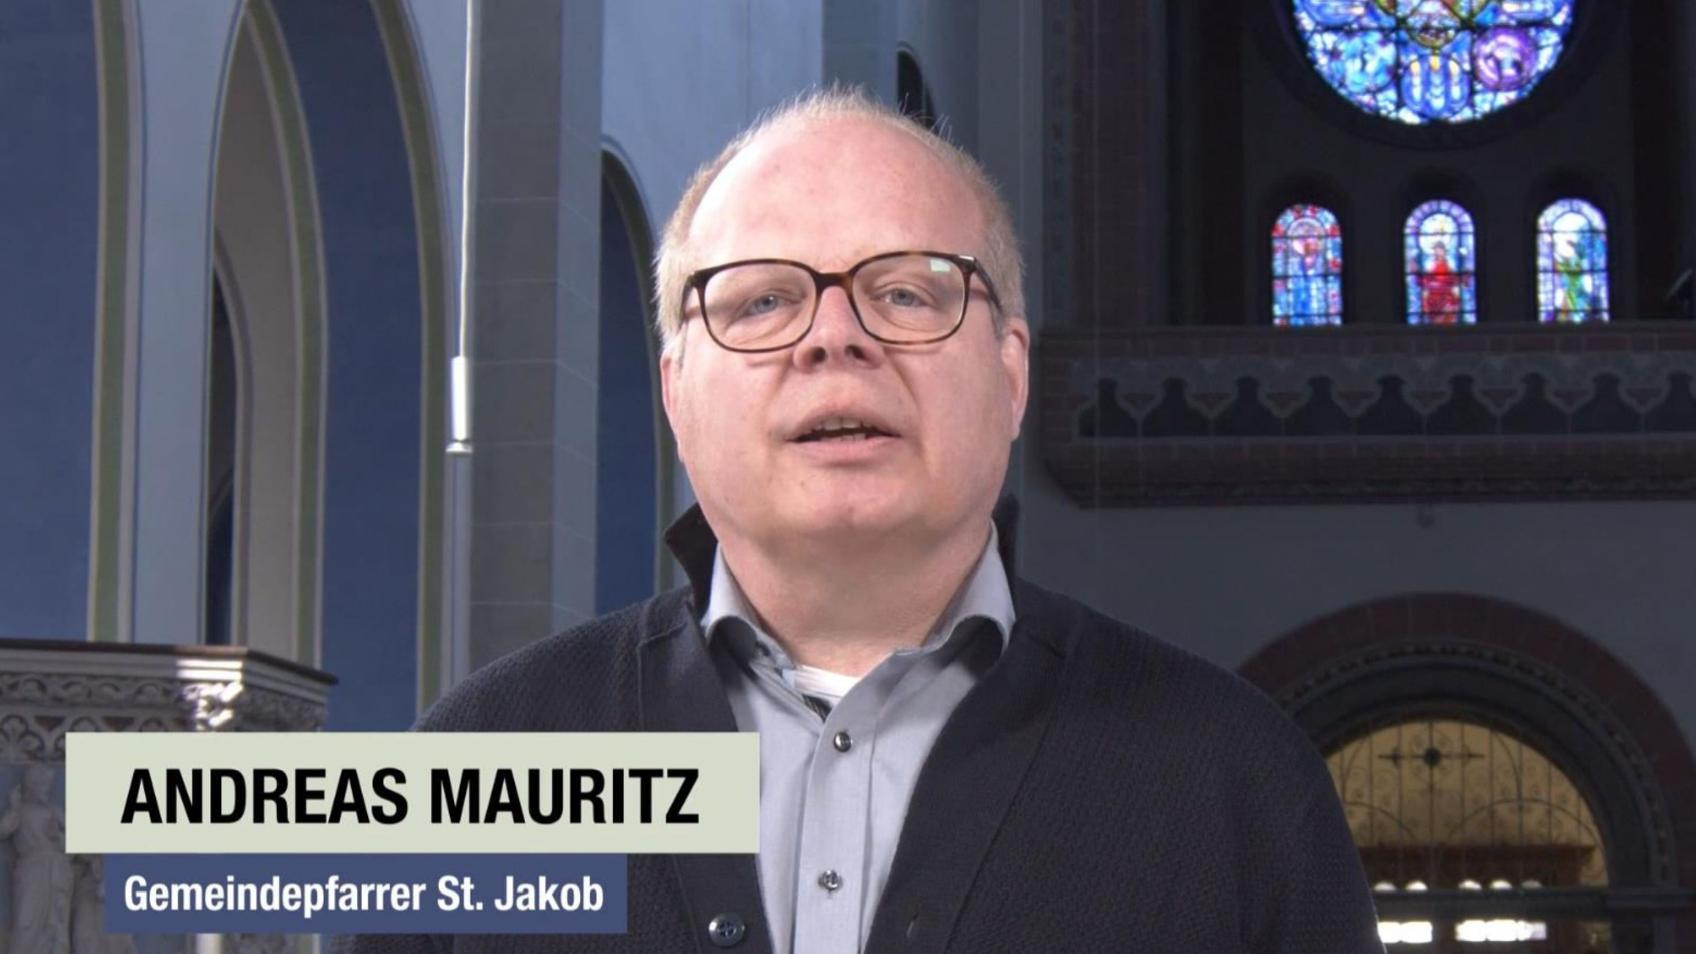 Pfr. Andreas Mauritz (c) Video